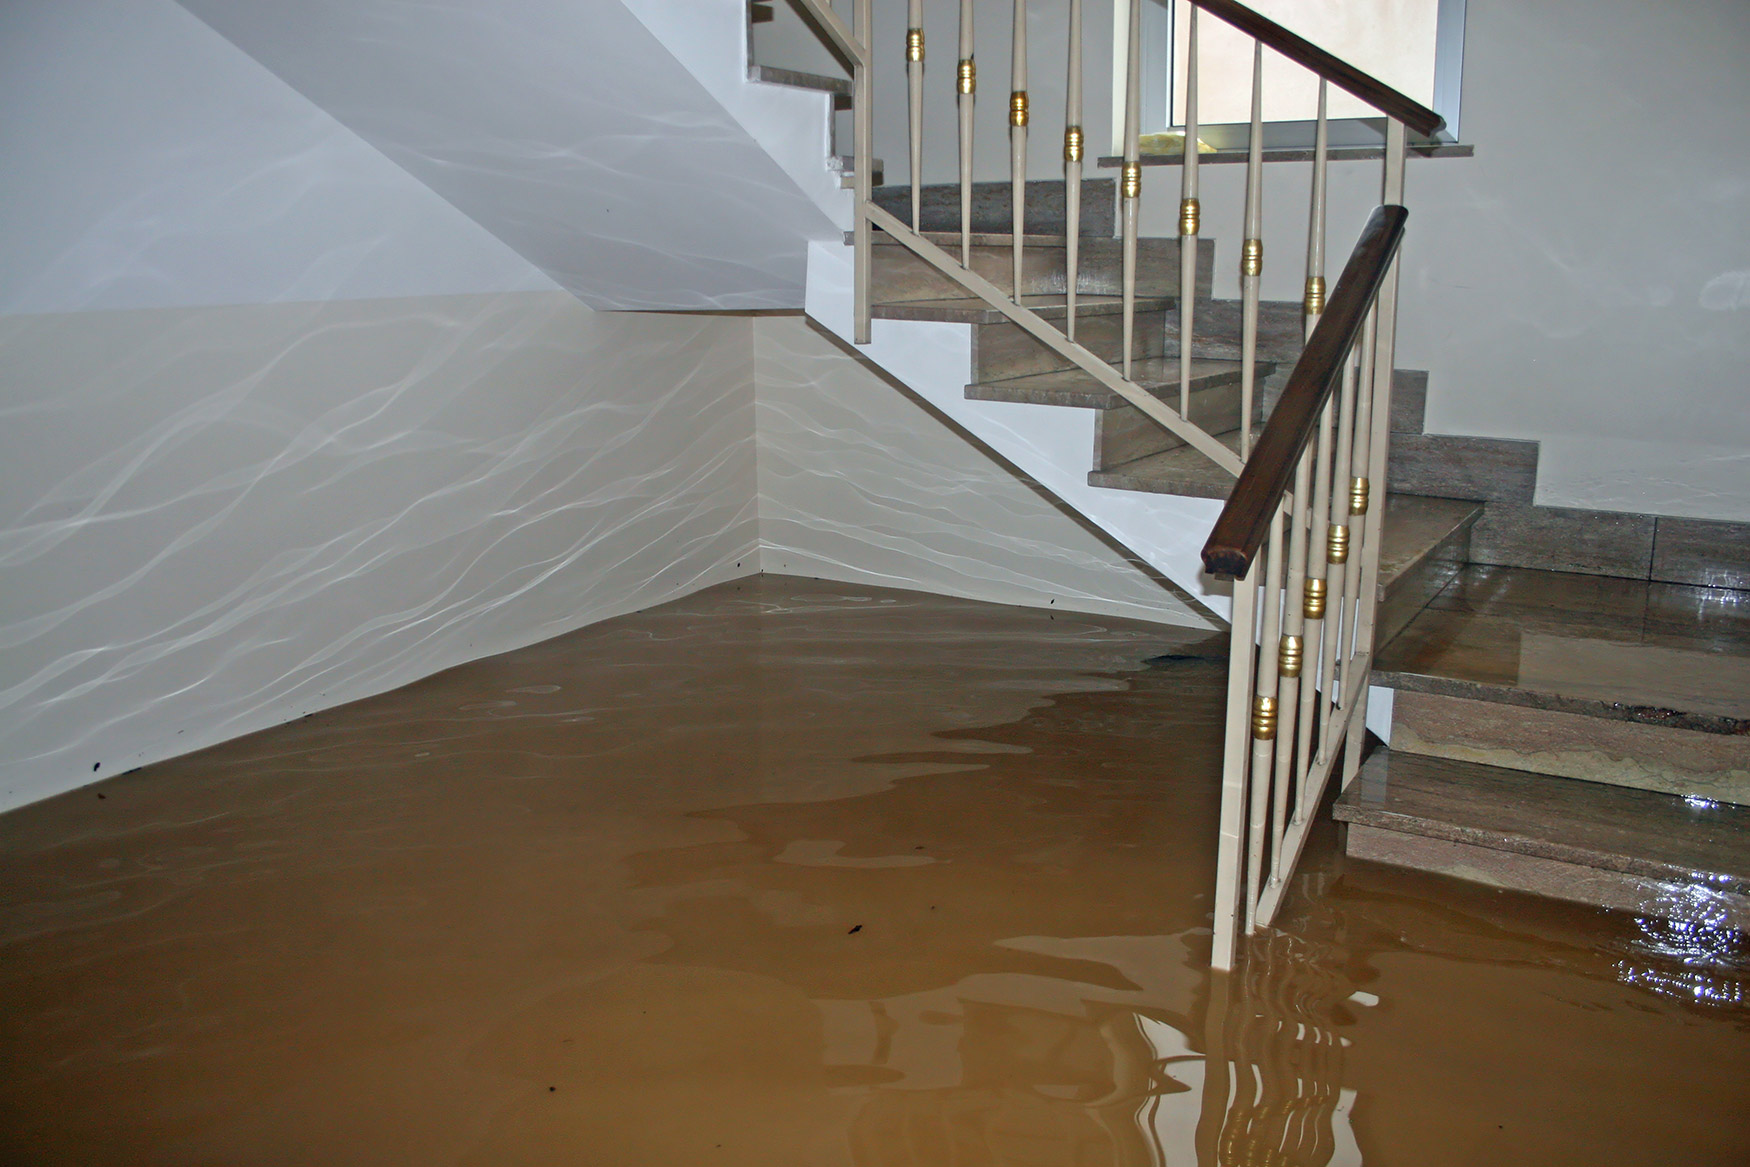 Inside flooded home